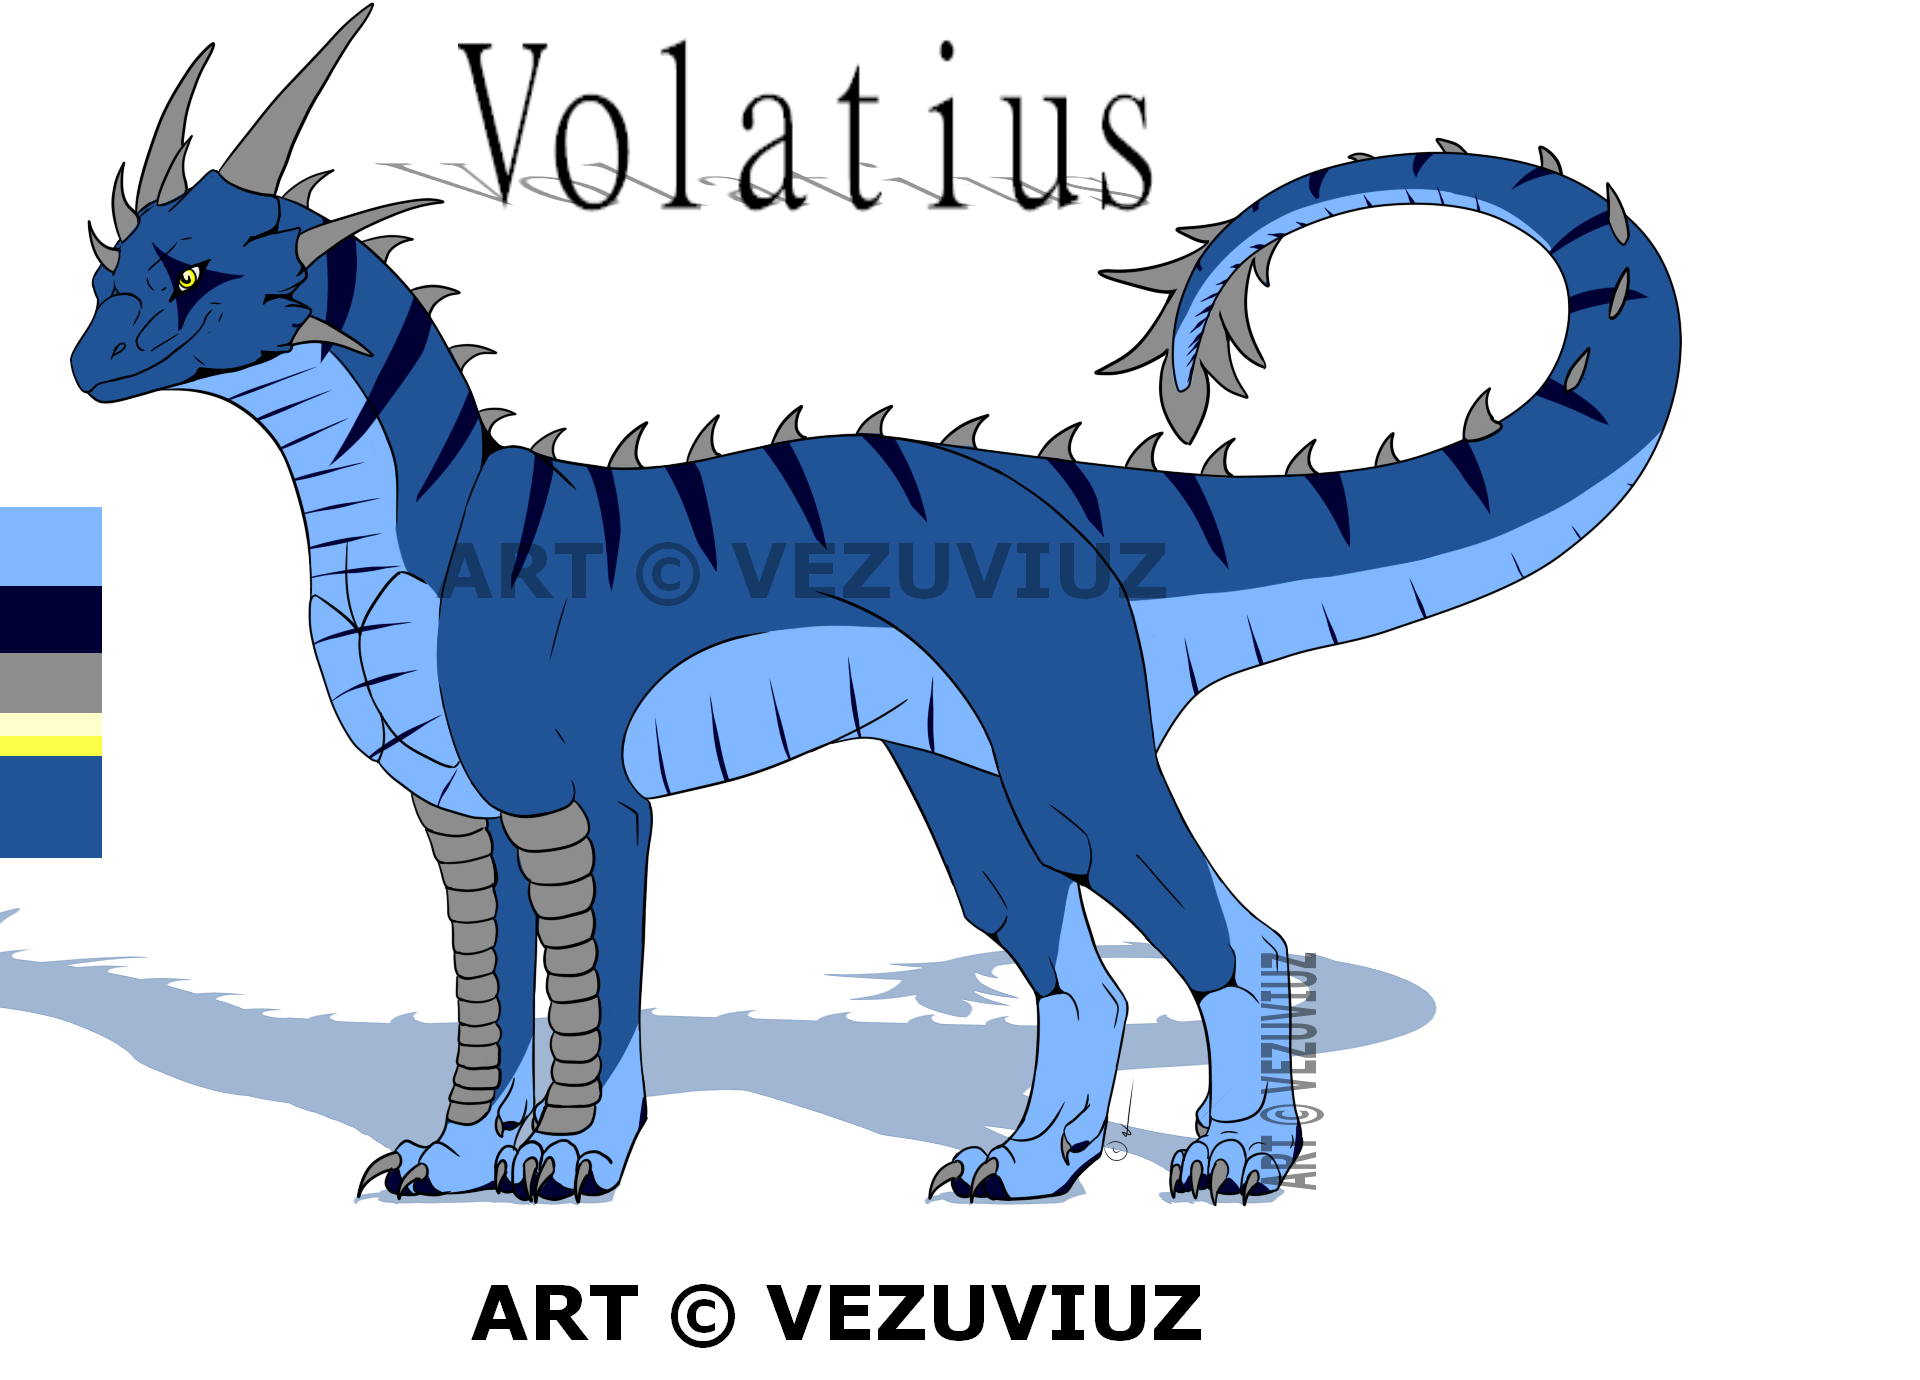 Volatius's new Design by DracoAndGrace